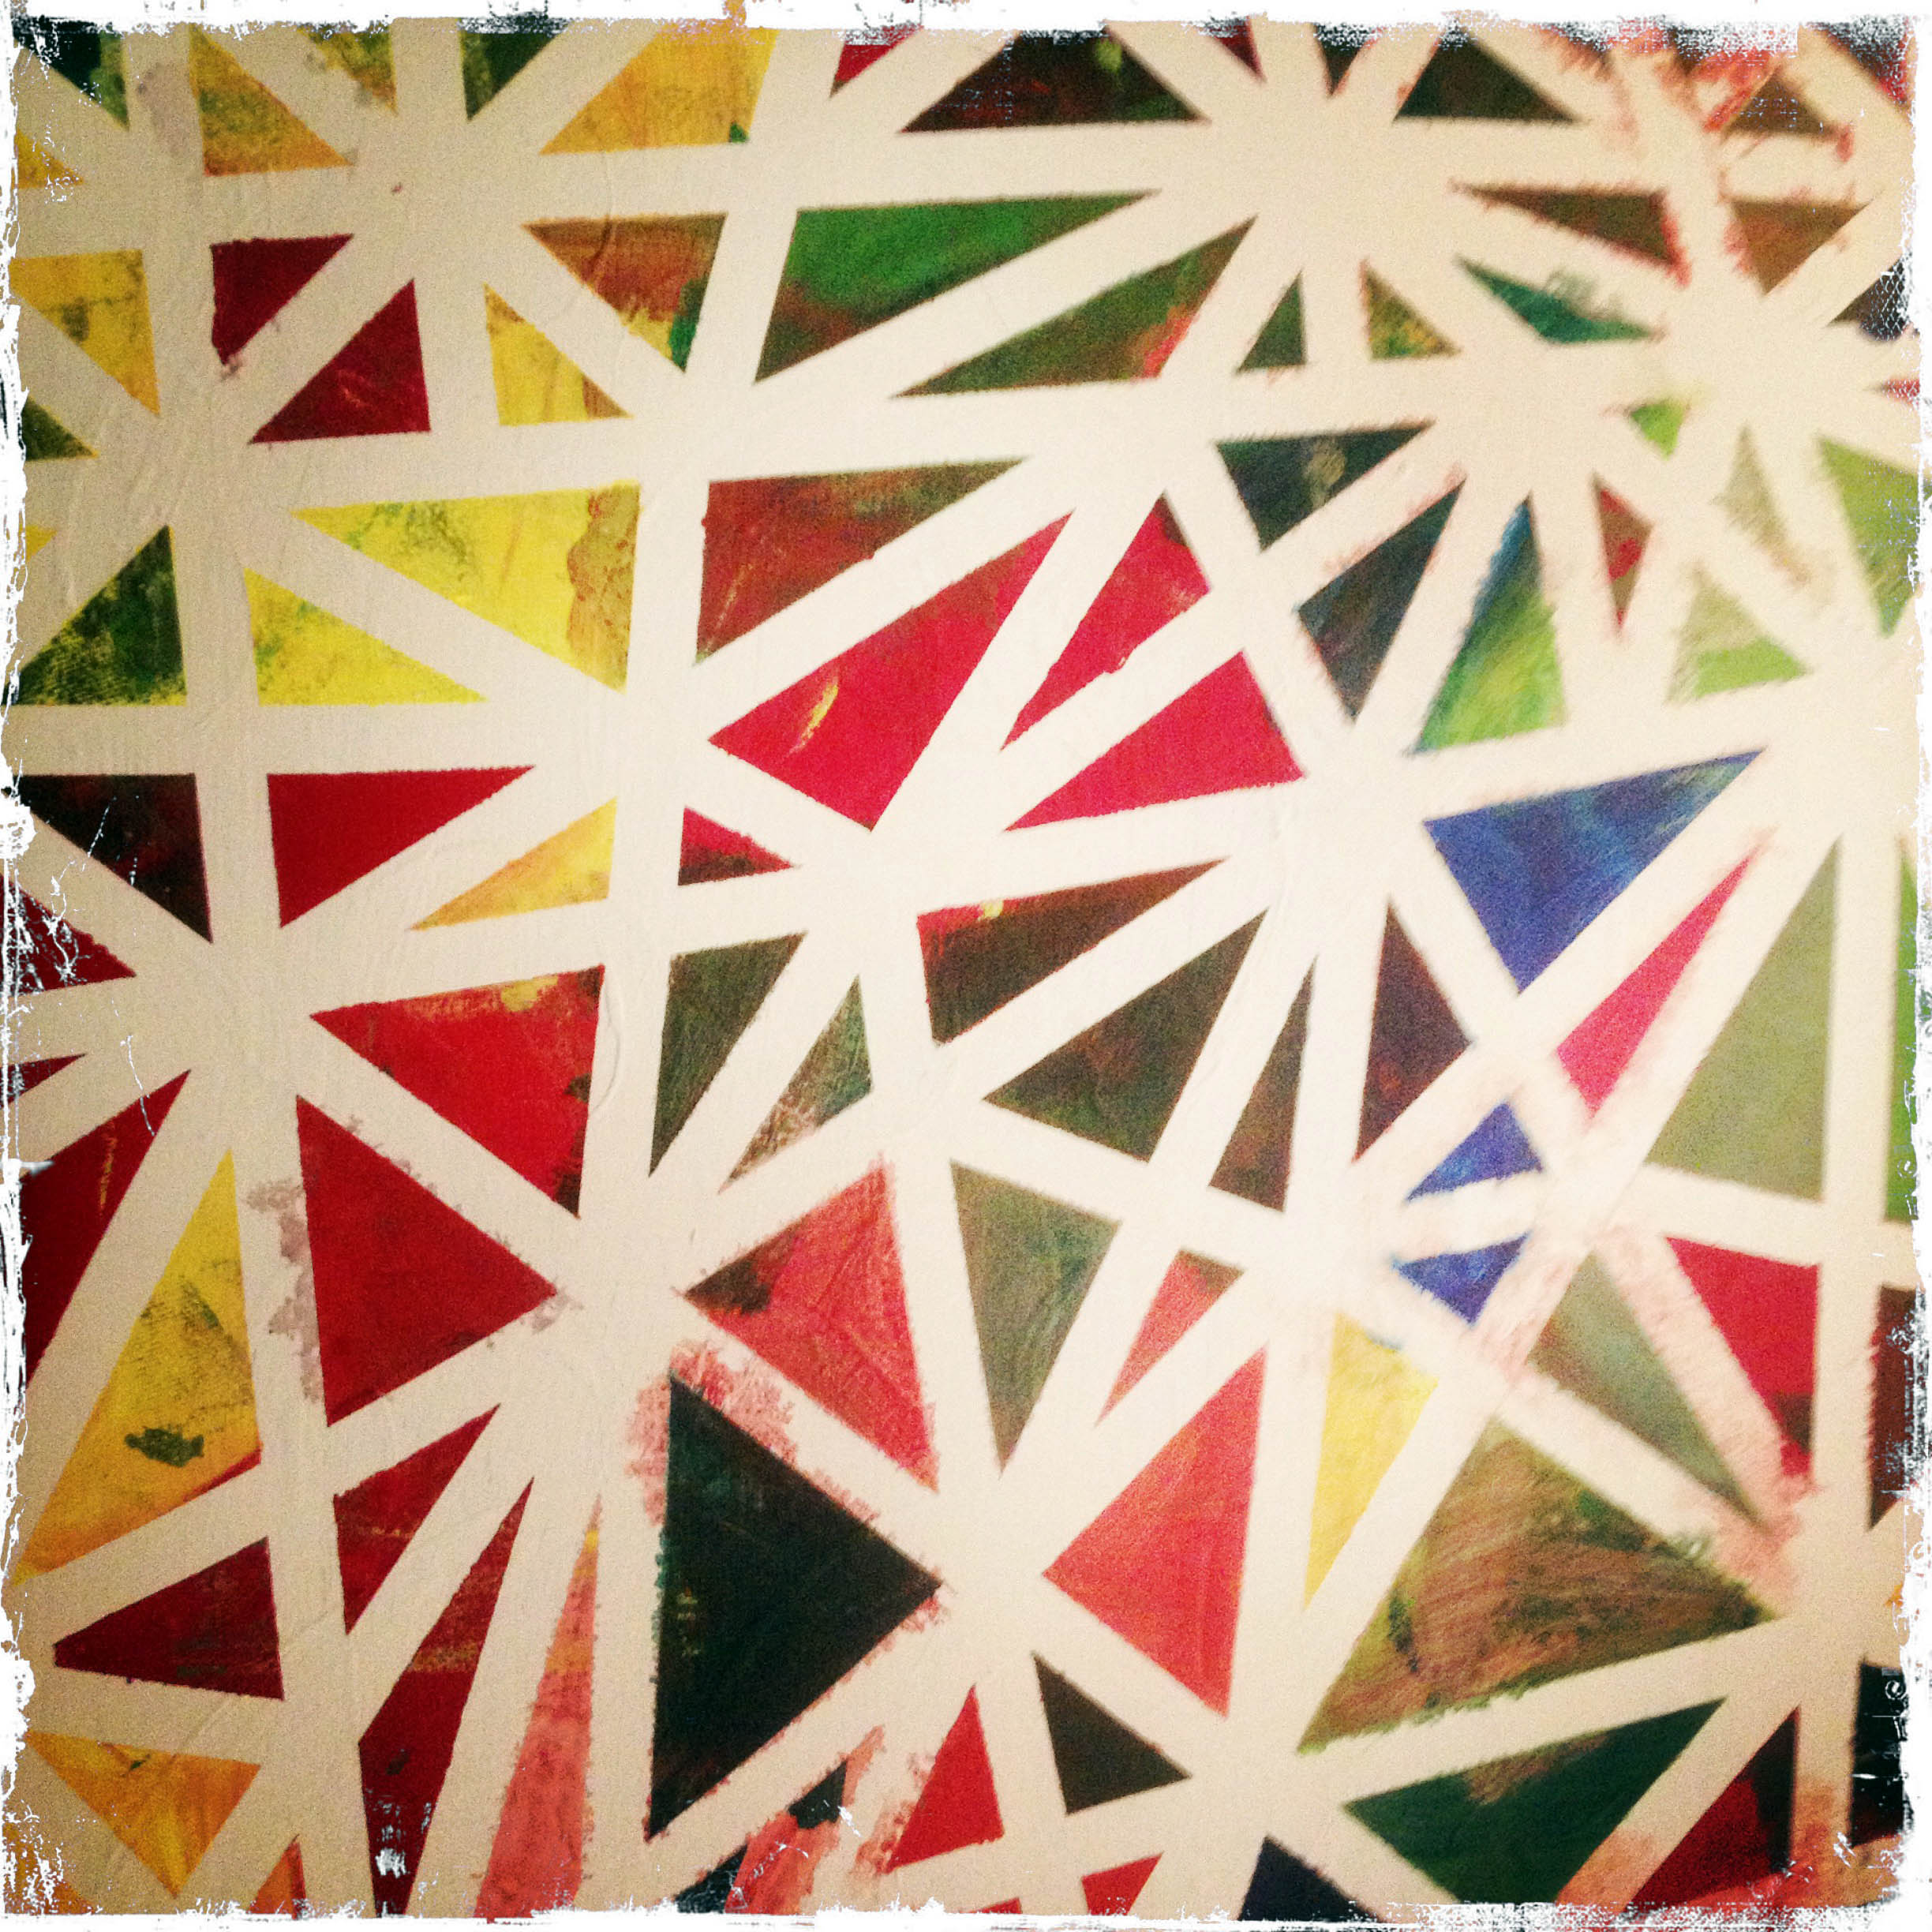 Day 282: Triangle Painting